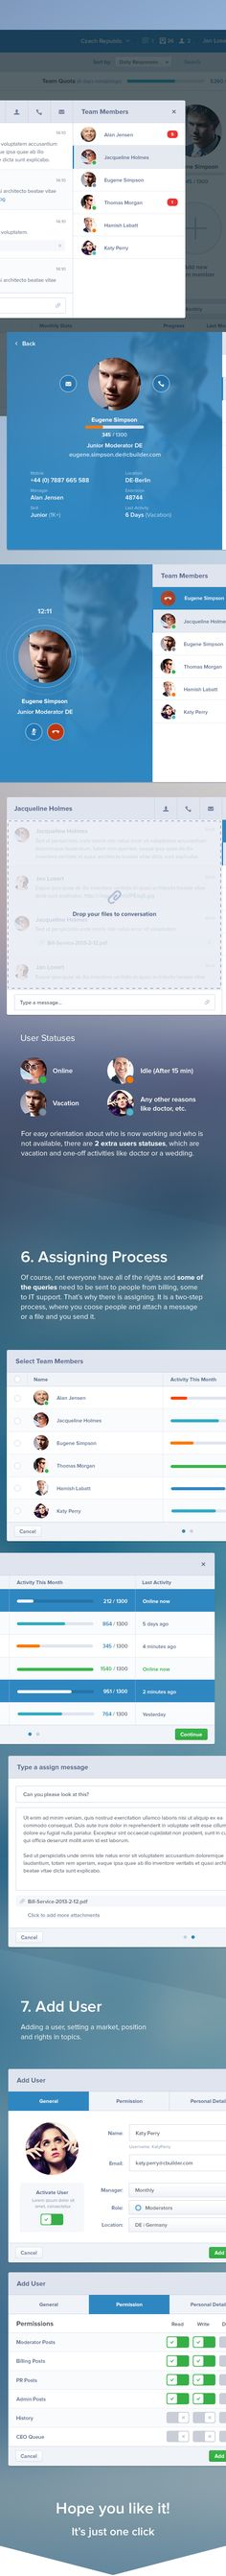 Customer Care UI / User Experience by Jan Losert, via Behance